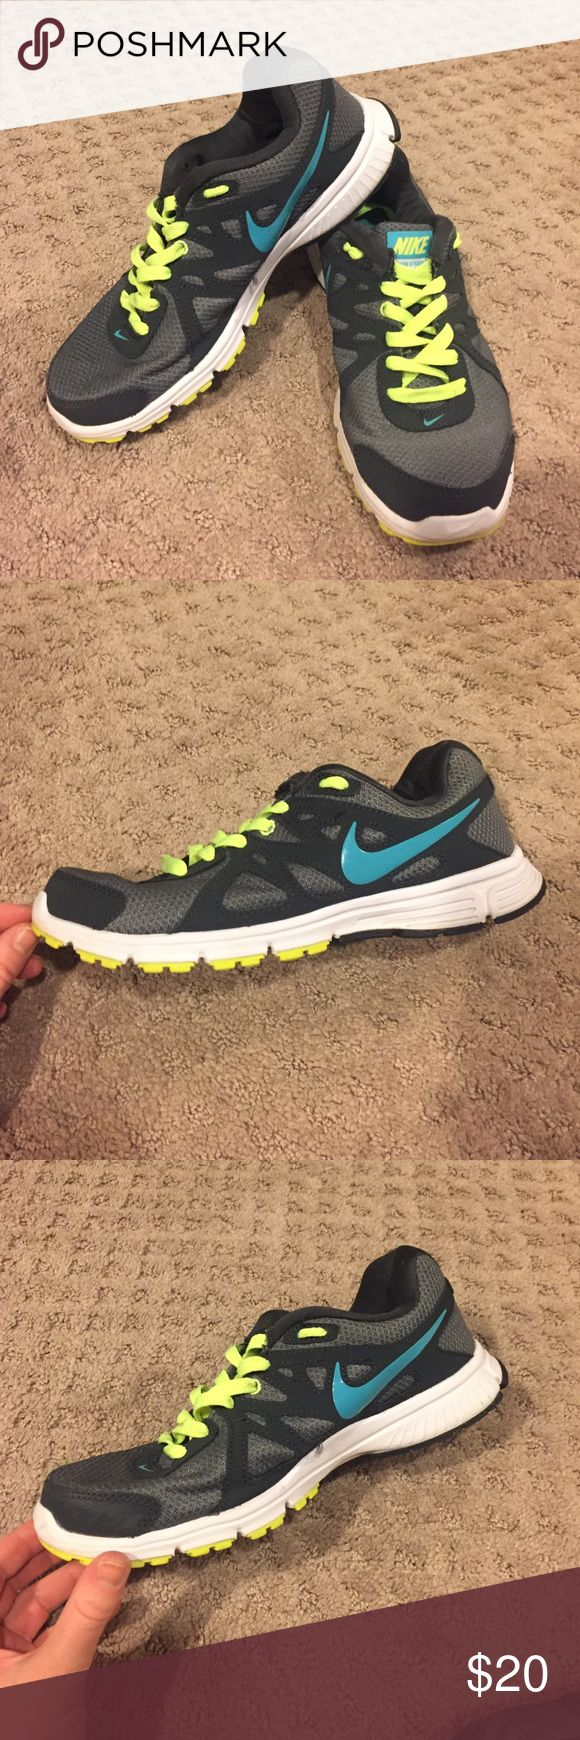 Nike Revolution 2 athletic sneakers Gray, teal, and neon yellow Nike athletic sneakers size 7 excellent condition Nike Shoes Sneakers